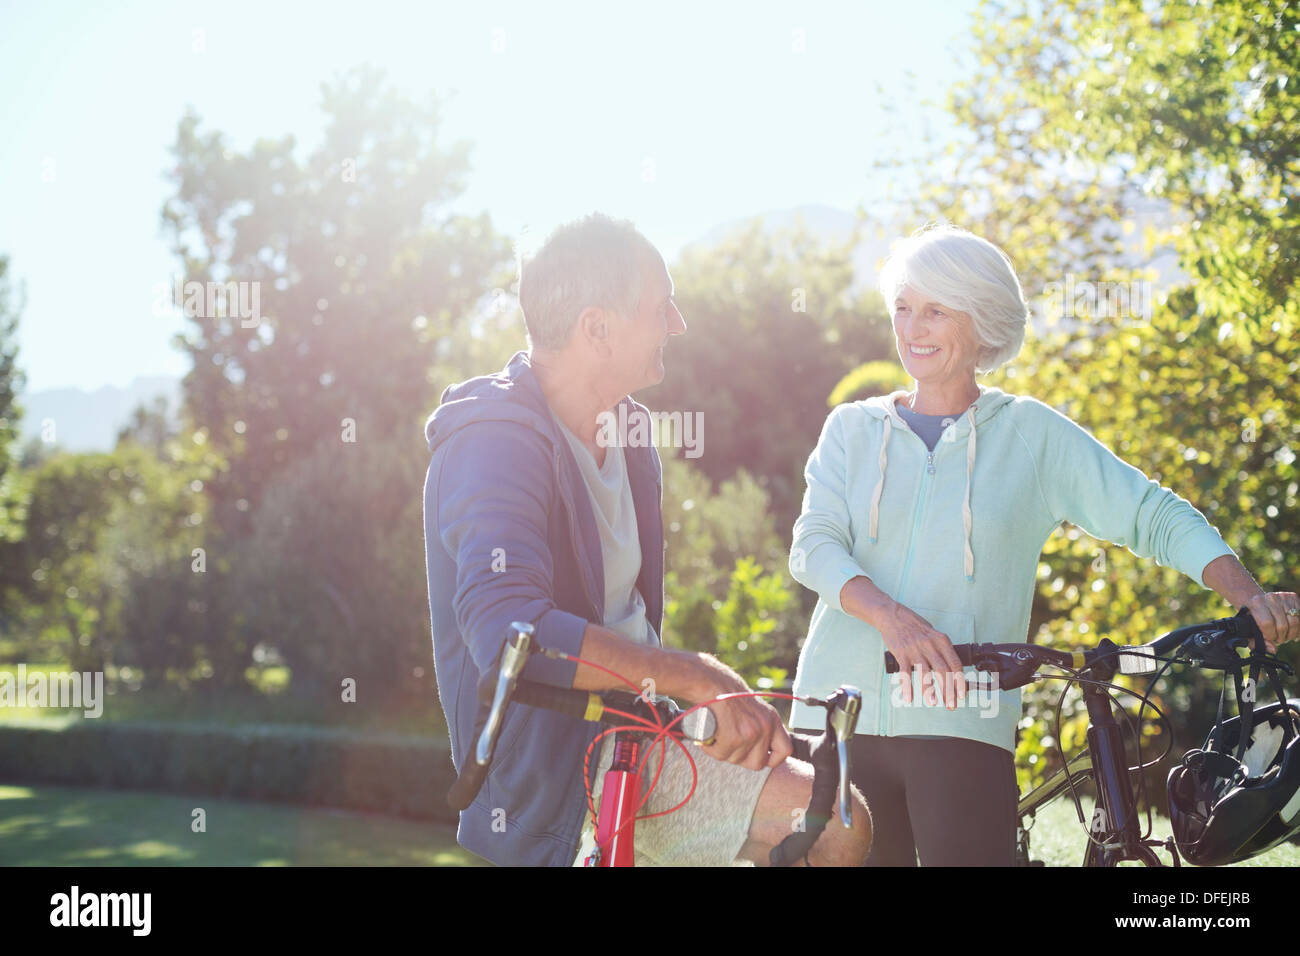 Senior couple with bicycles in park - Stock Image